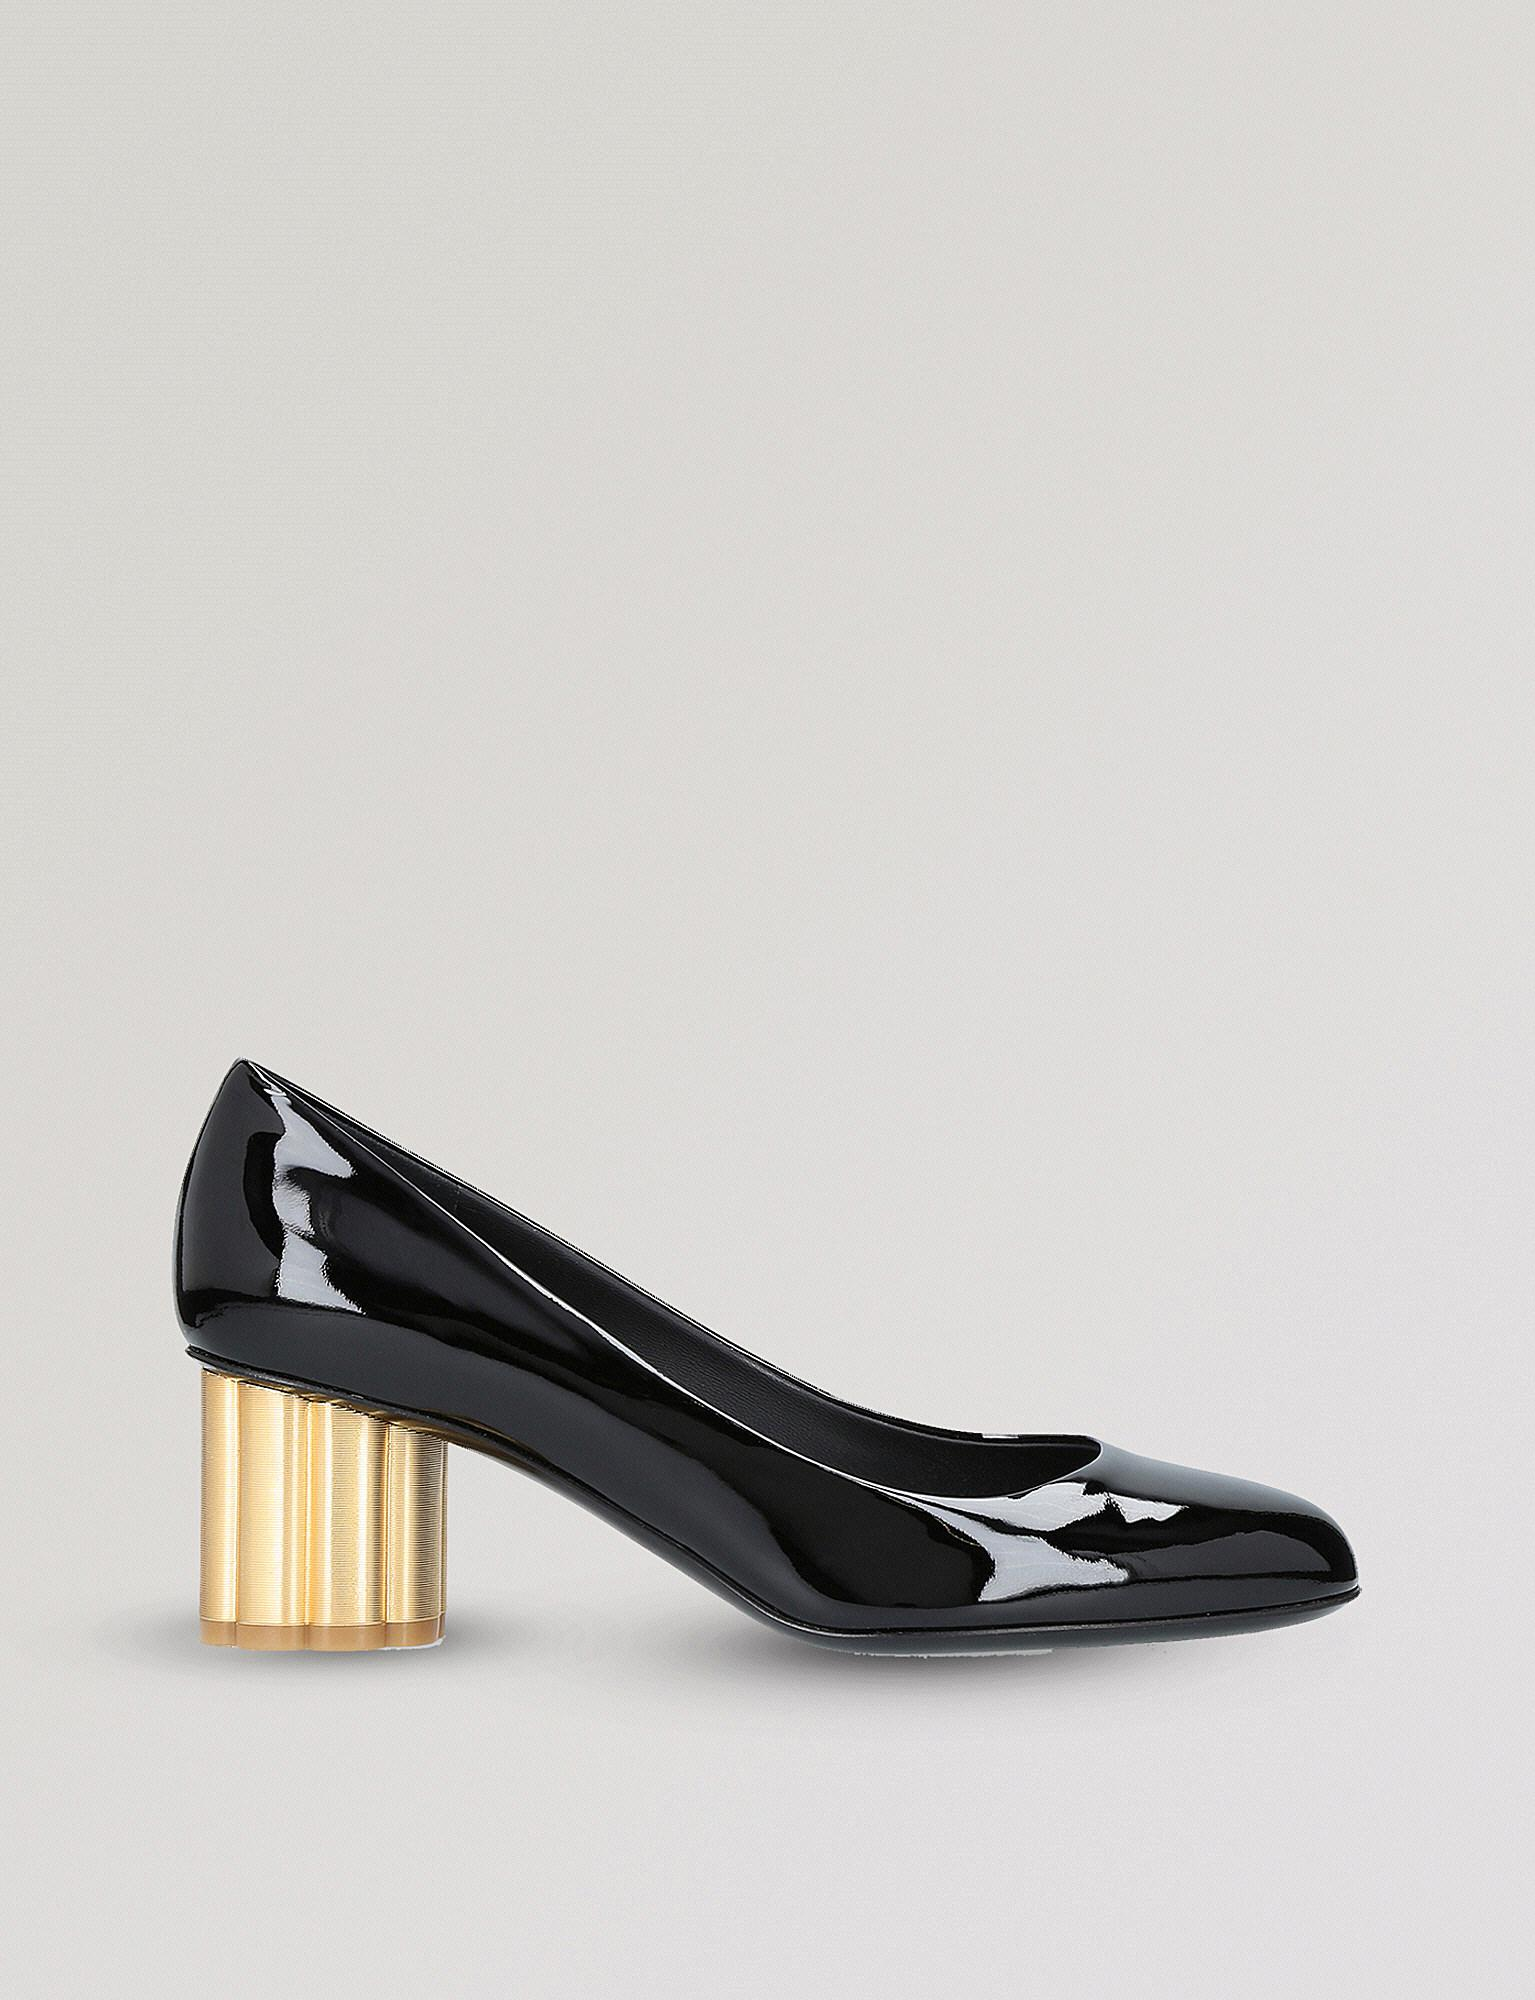 Grey Outlet Store Online For Cheap For Sale Lucca 55 Patent Pumps in Black Patent Leather Salvatore Ferragamo Free Shipping Discount Authentic Free Shipping Lowest Price pmG8cdu8